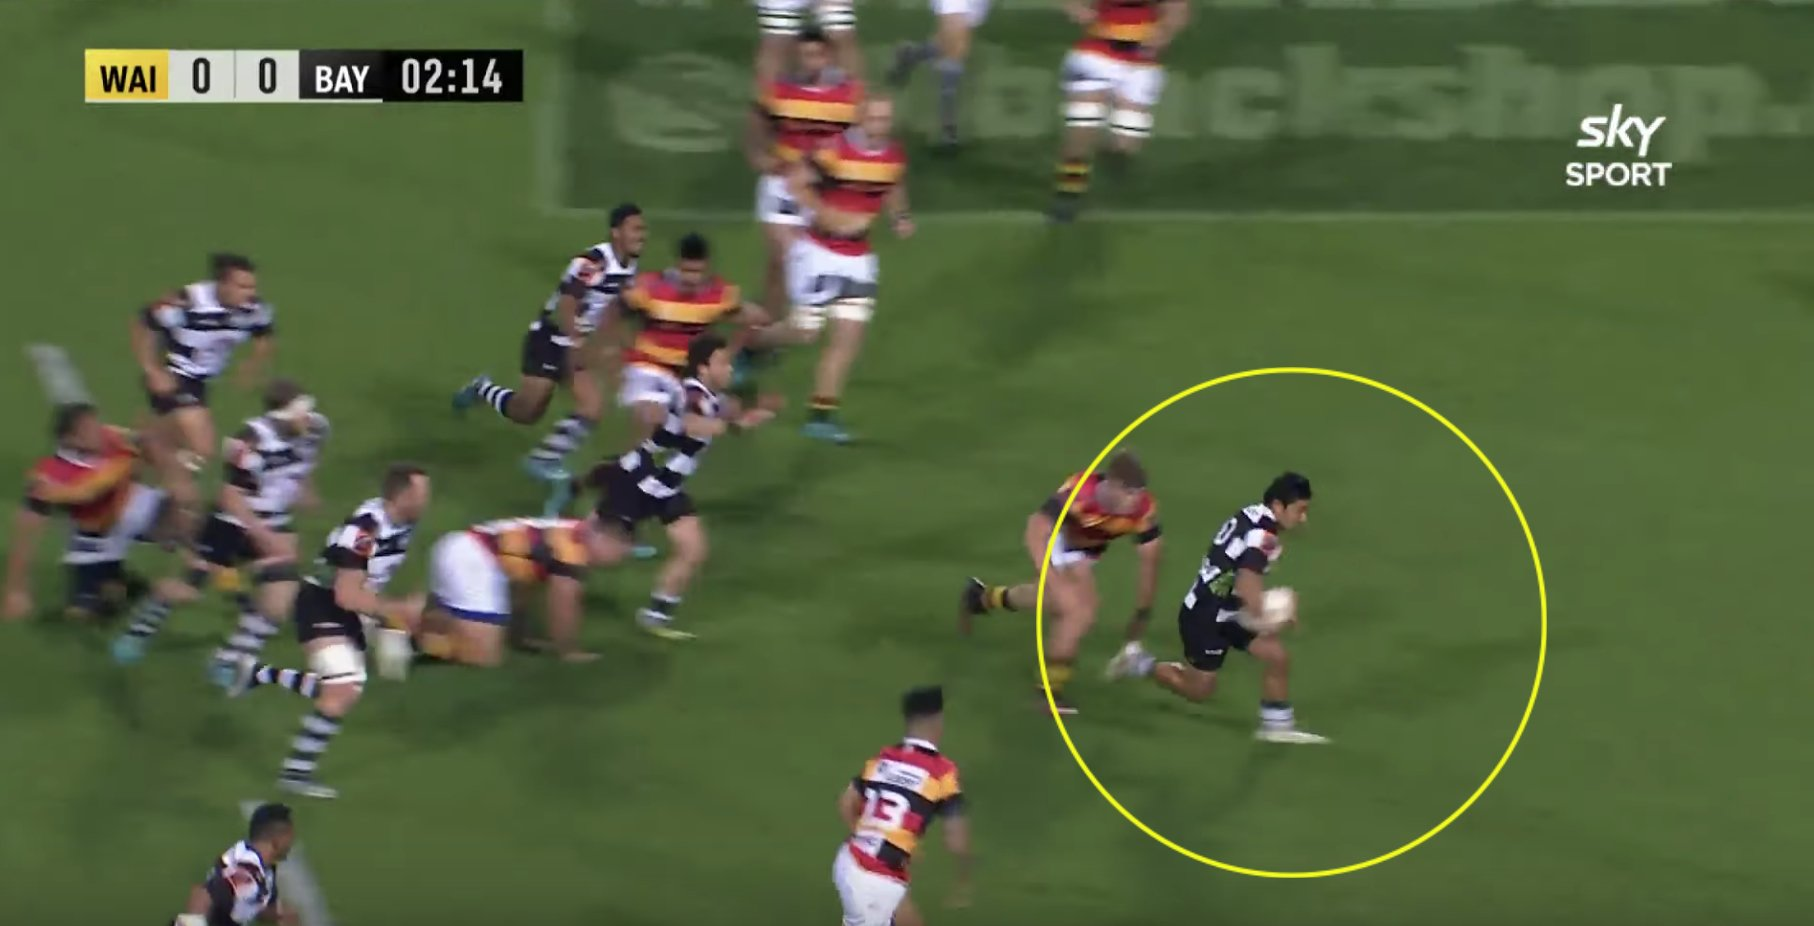 Fly-half somehow beats 7 defenders to score superb solo try